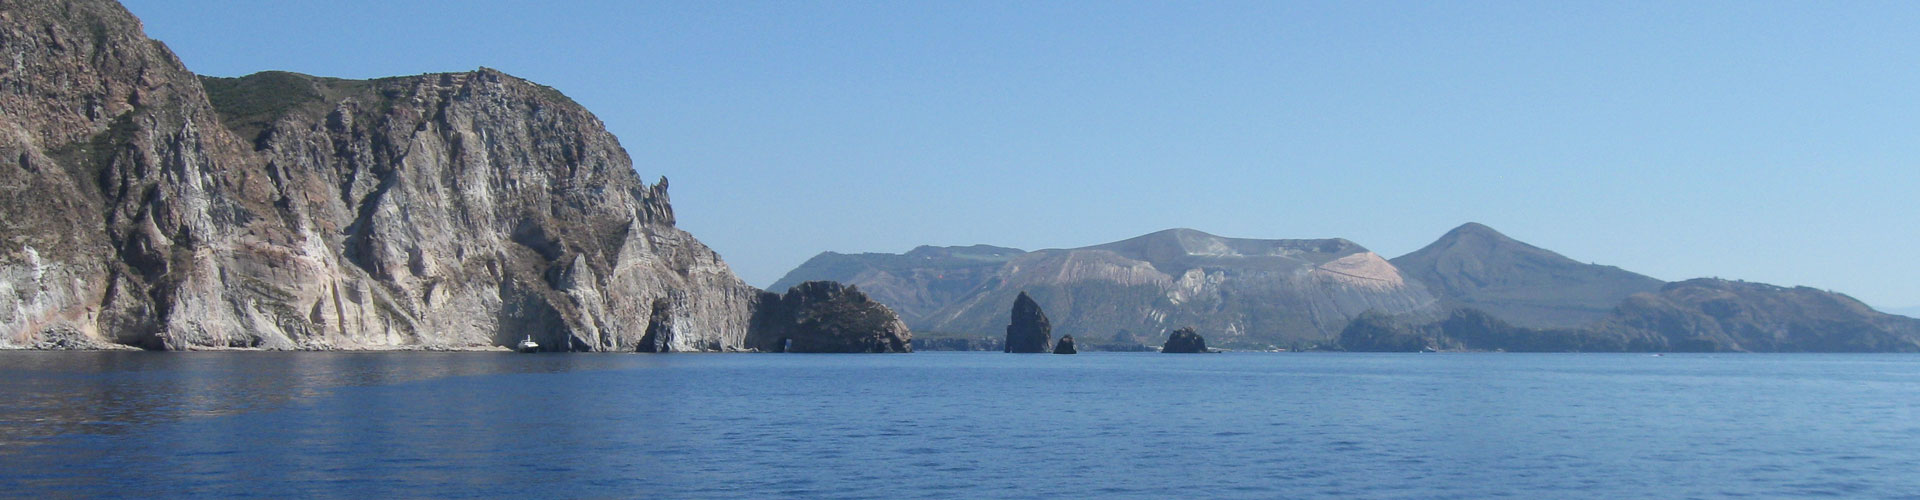 The Aeolian Islands...